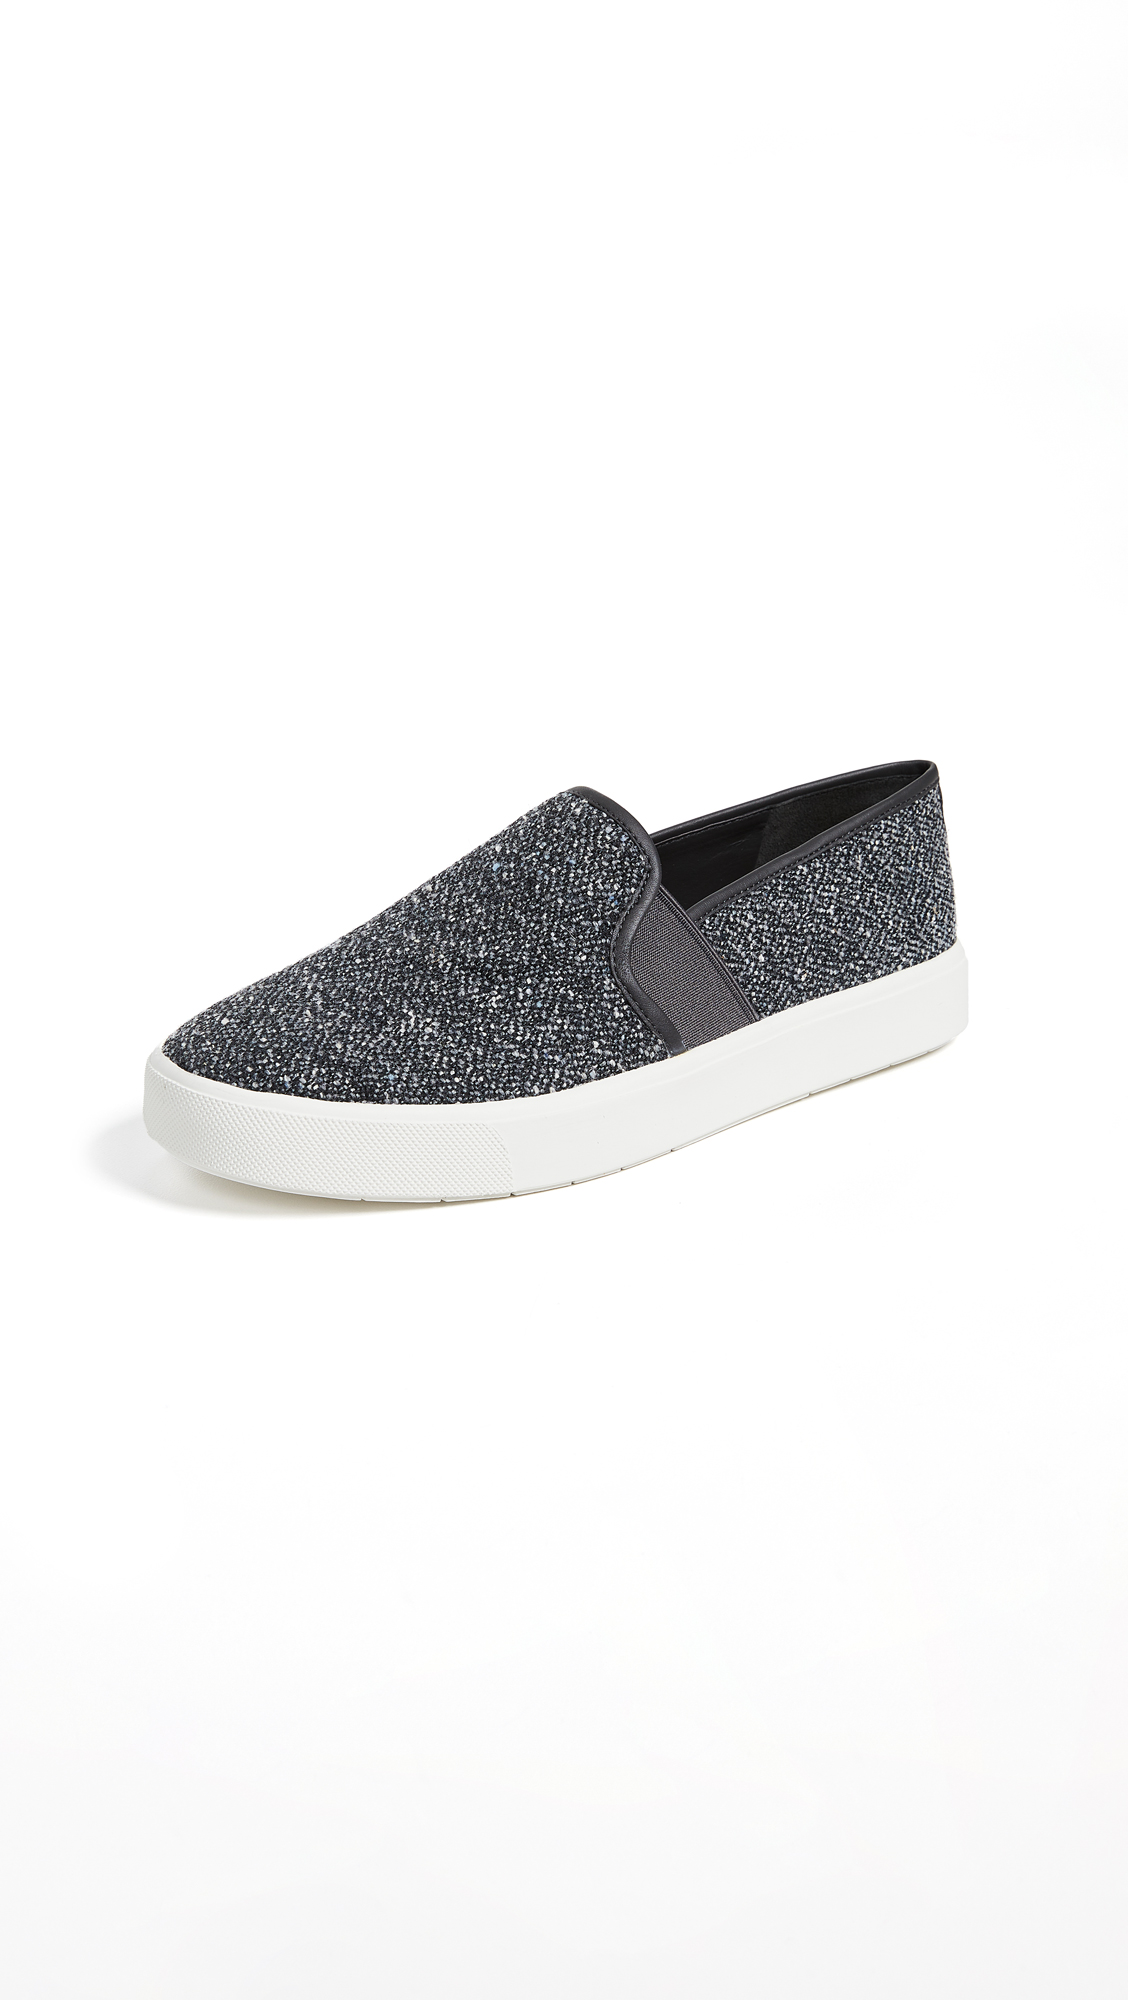 Blair-5 Tweed Slip-On Skate Sneakers in Navy